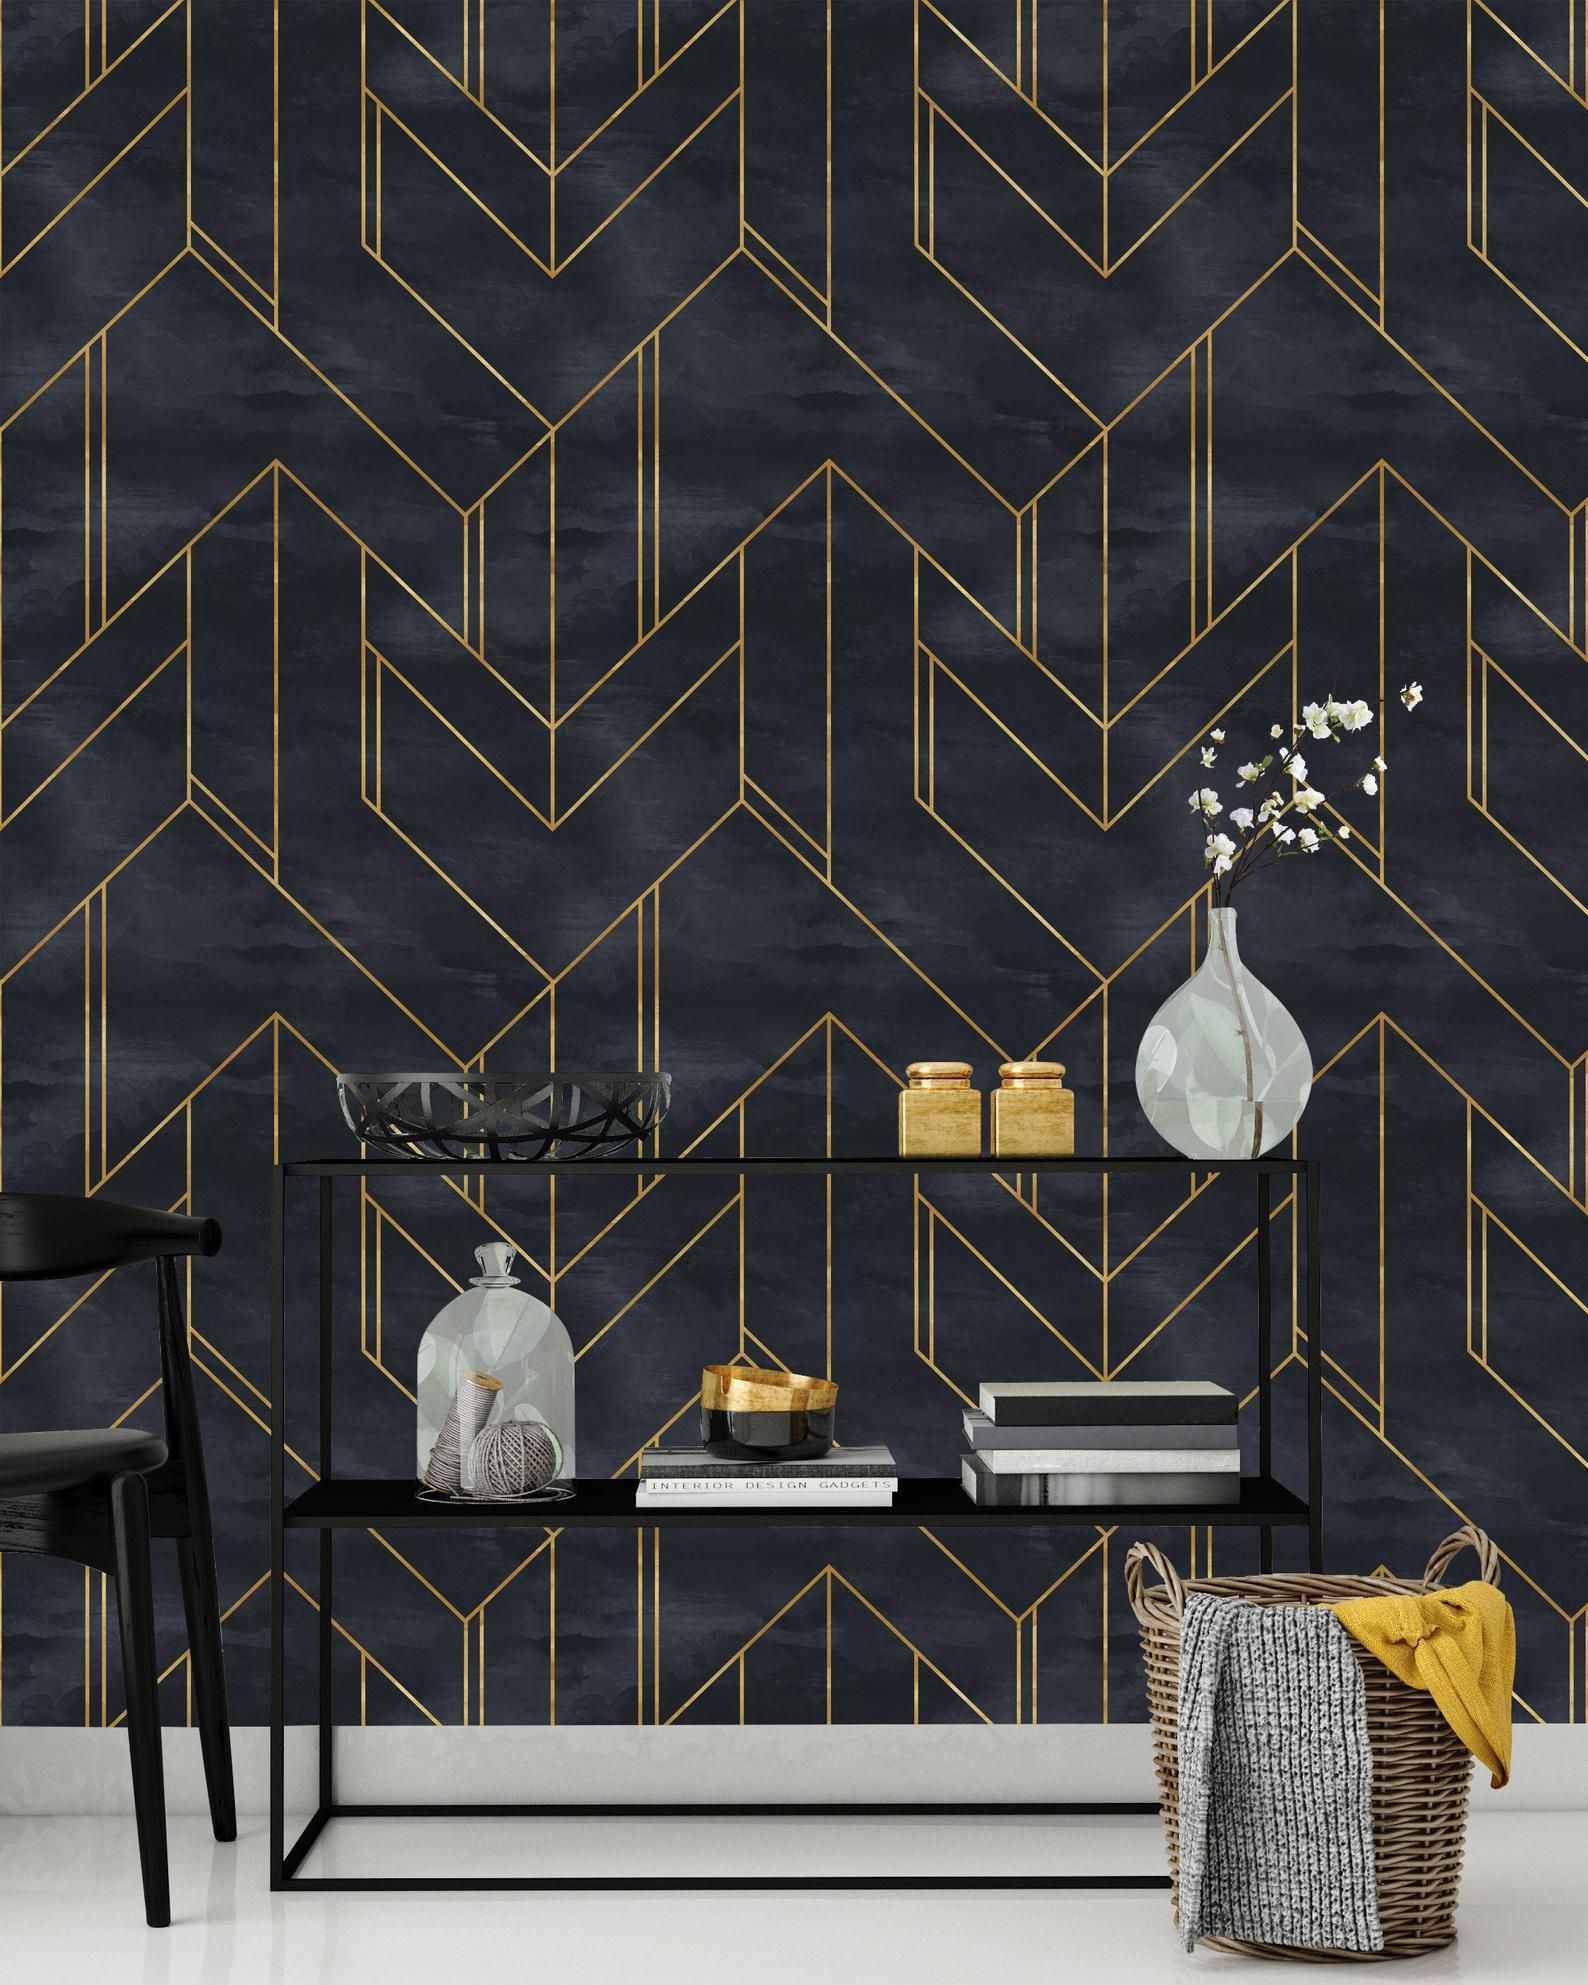 Removable Wallpaper Gold And Navy Blue Geometric Peel Stick Etsy Removable Wallpaper Navy Wallpaper Home Decor